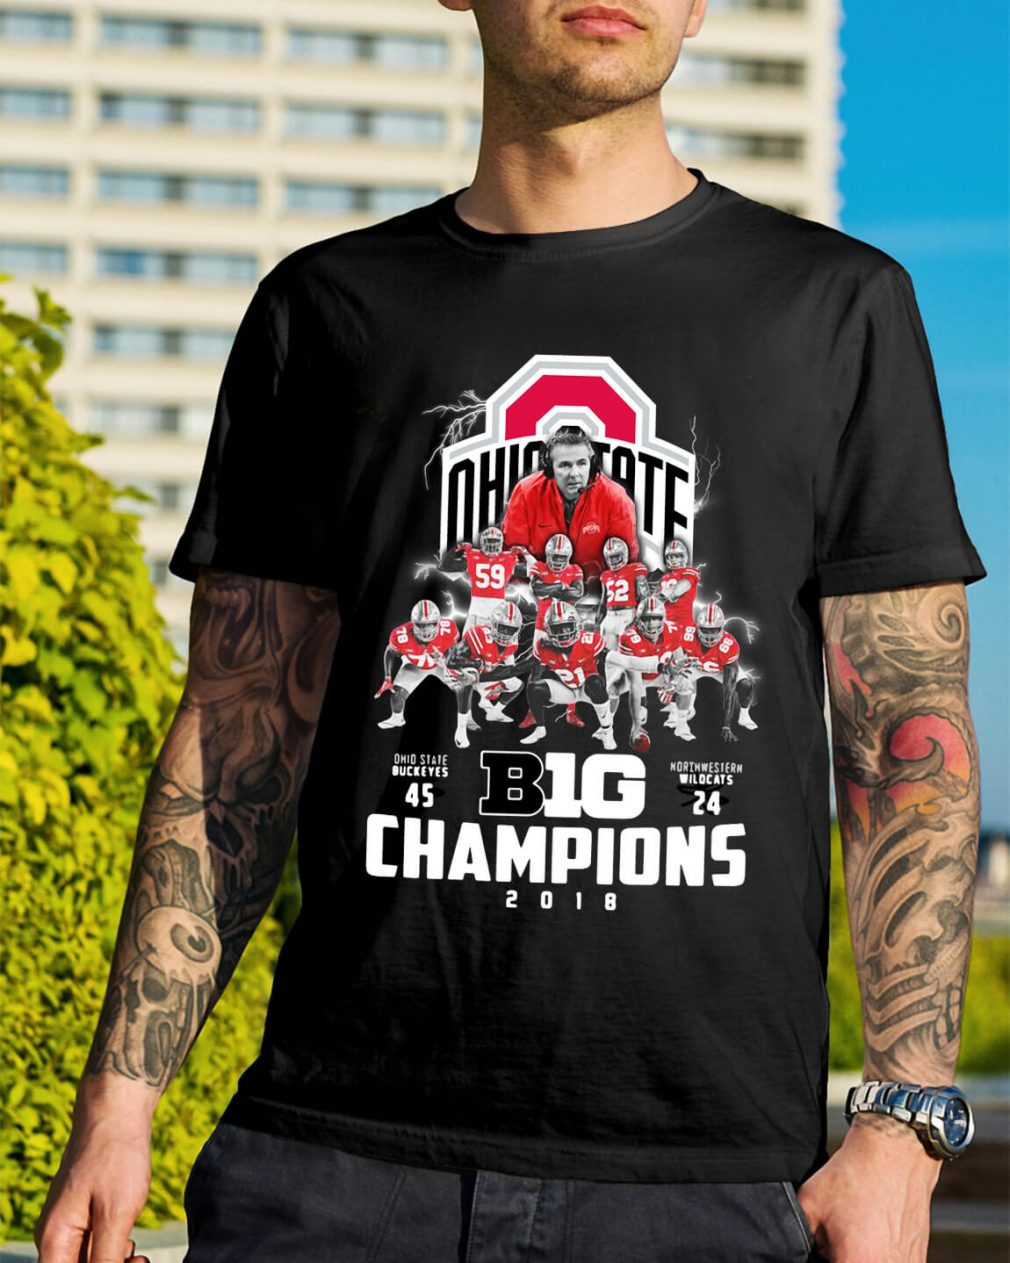 Big Champions Ohio State Buckeyes vs Northern Illinois shirt